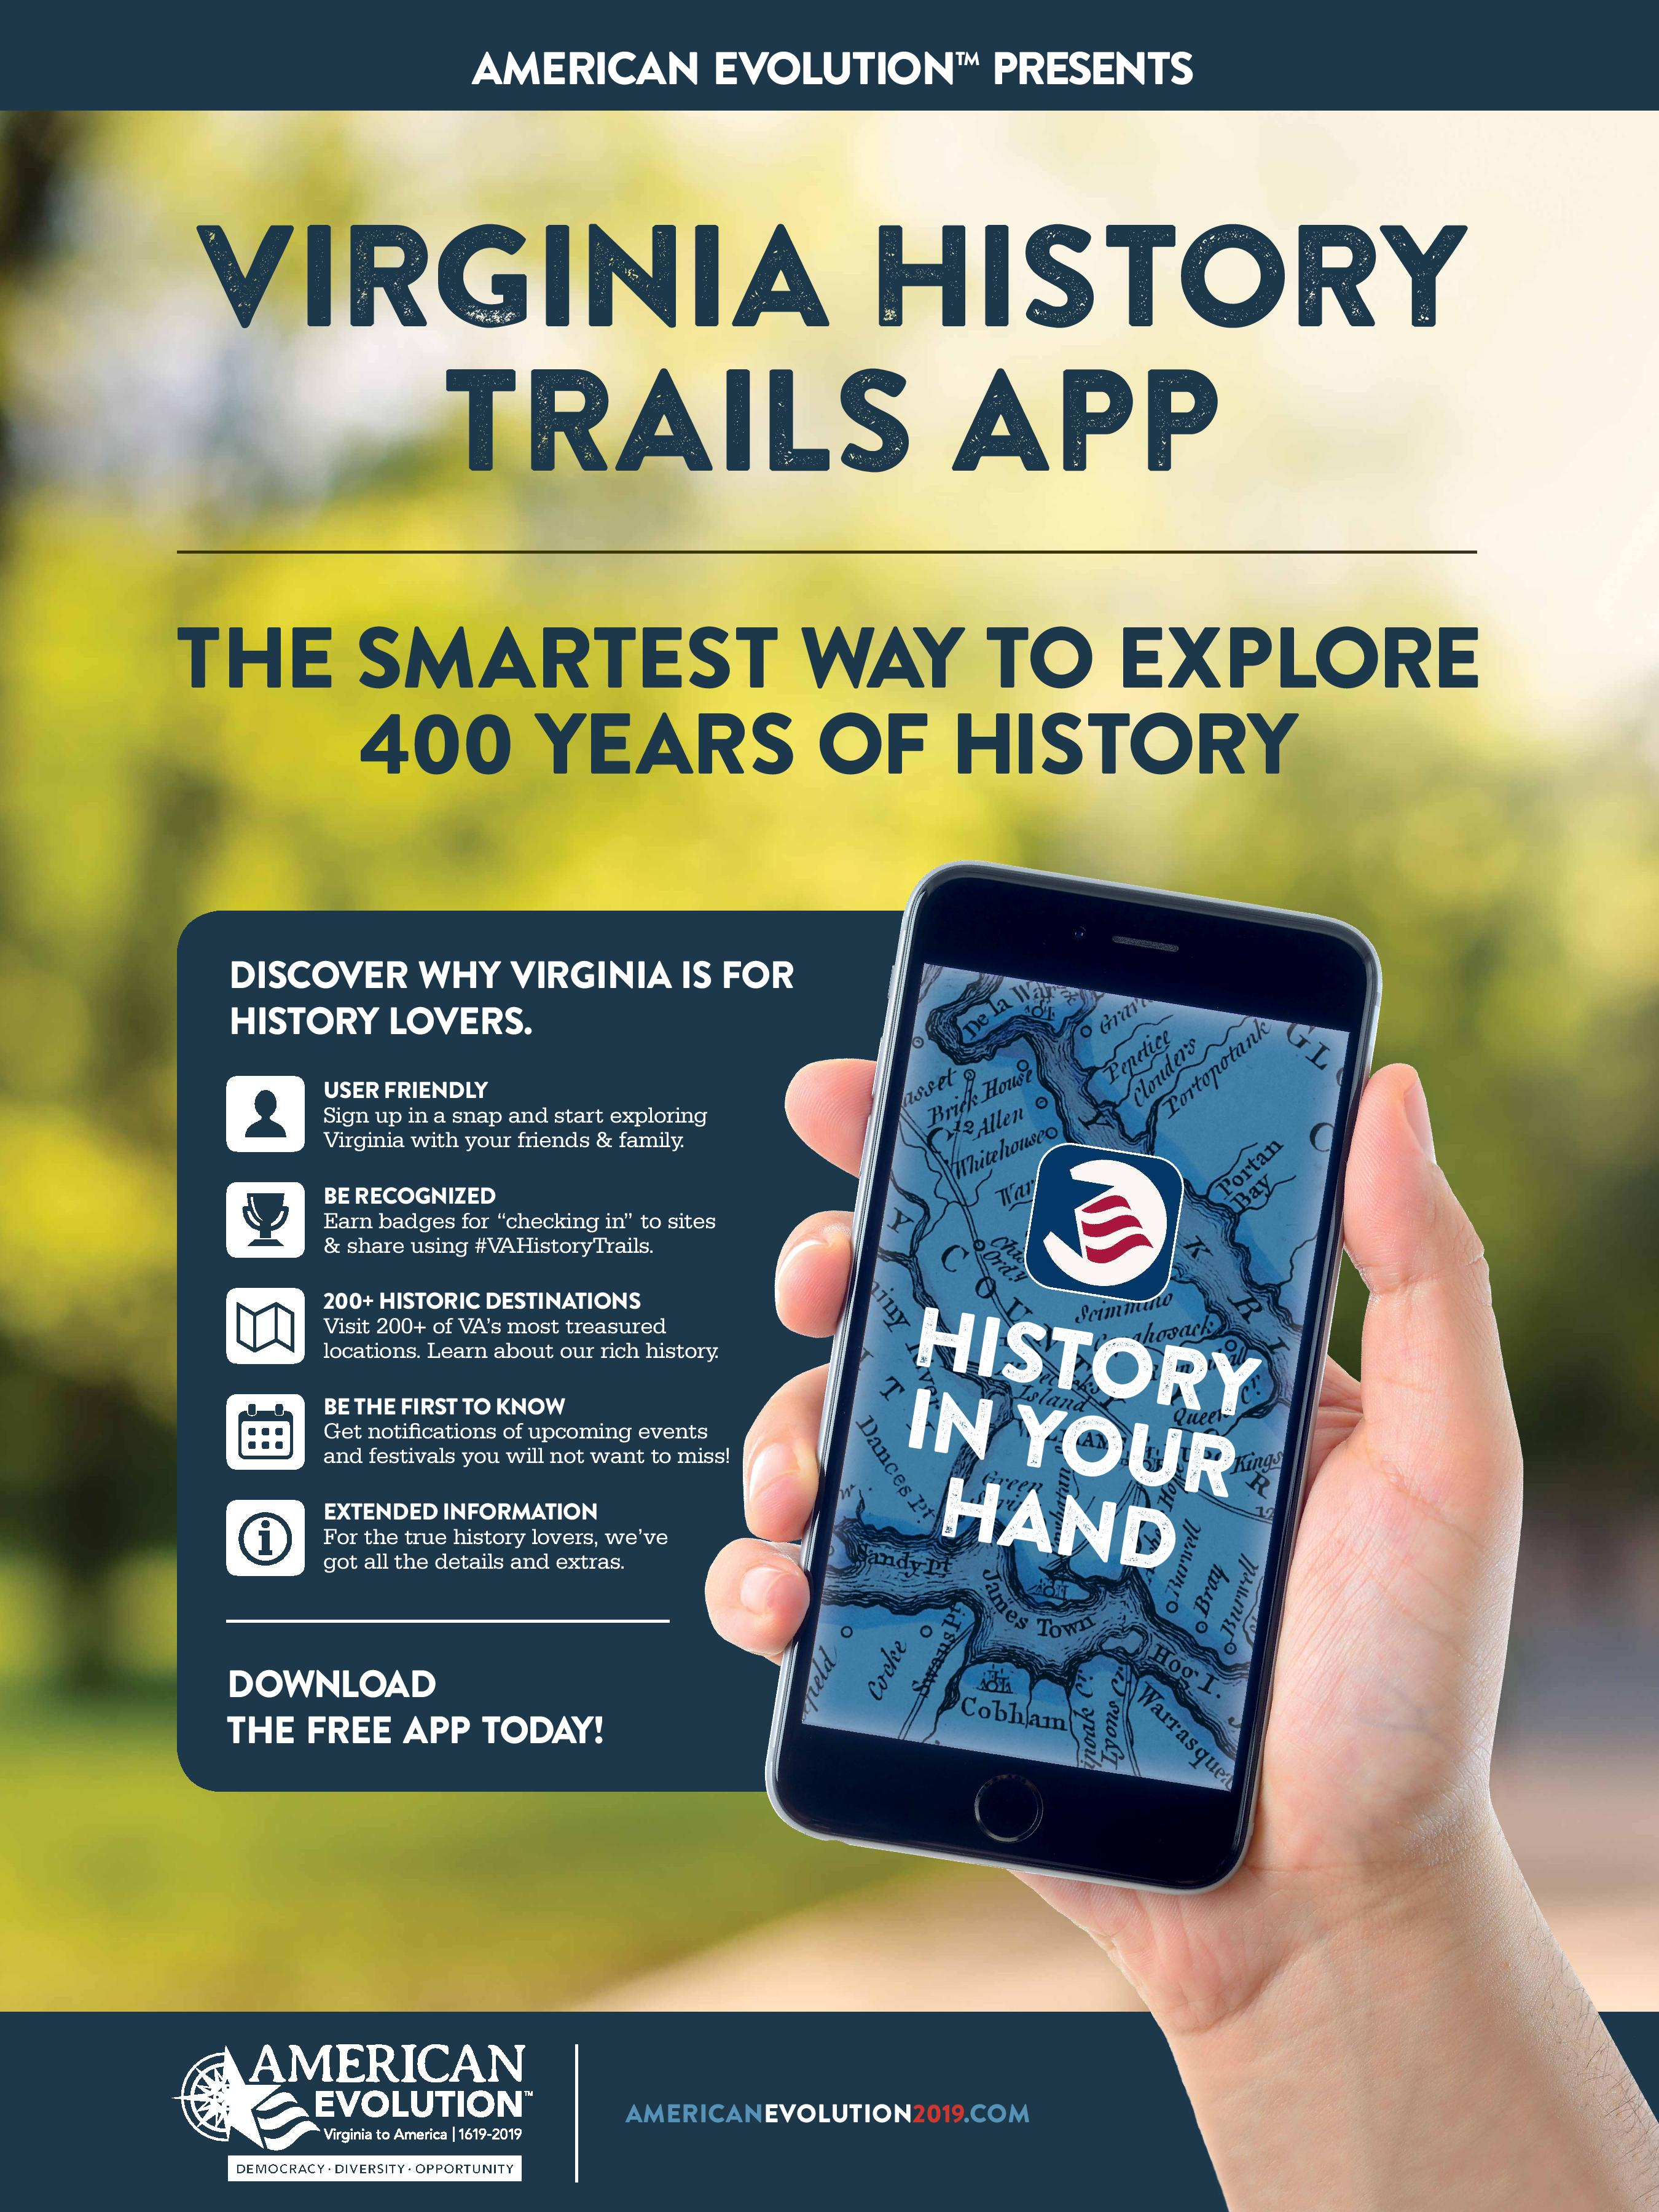 History in Your Hands: The Smartest Way to Explore 400 Years of History